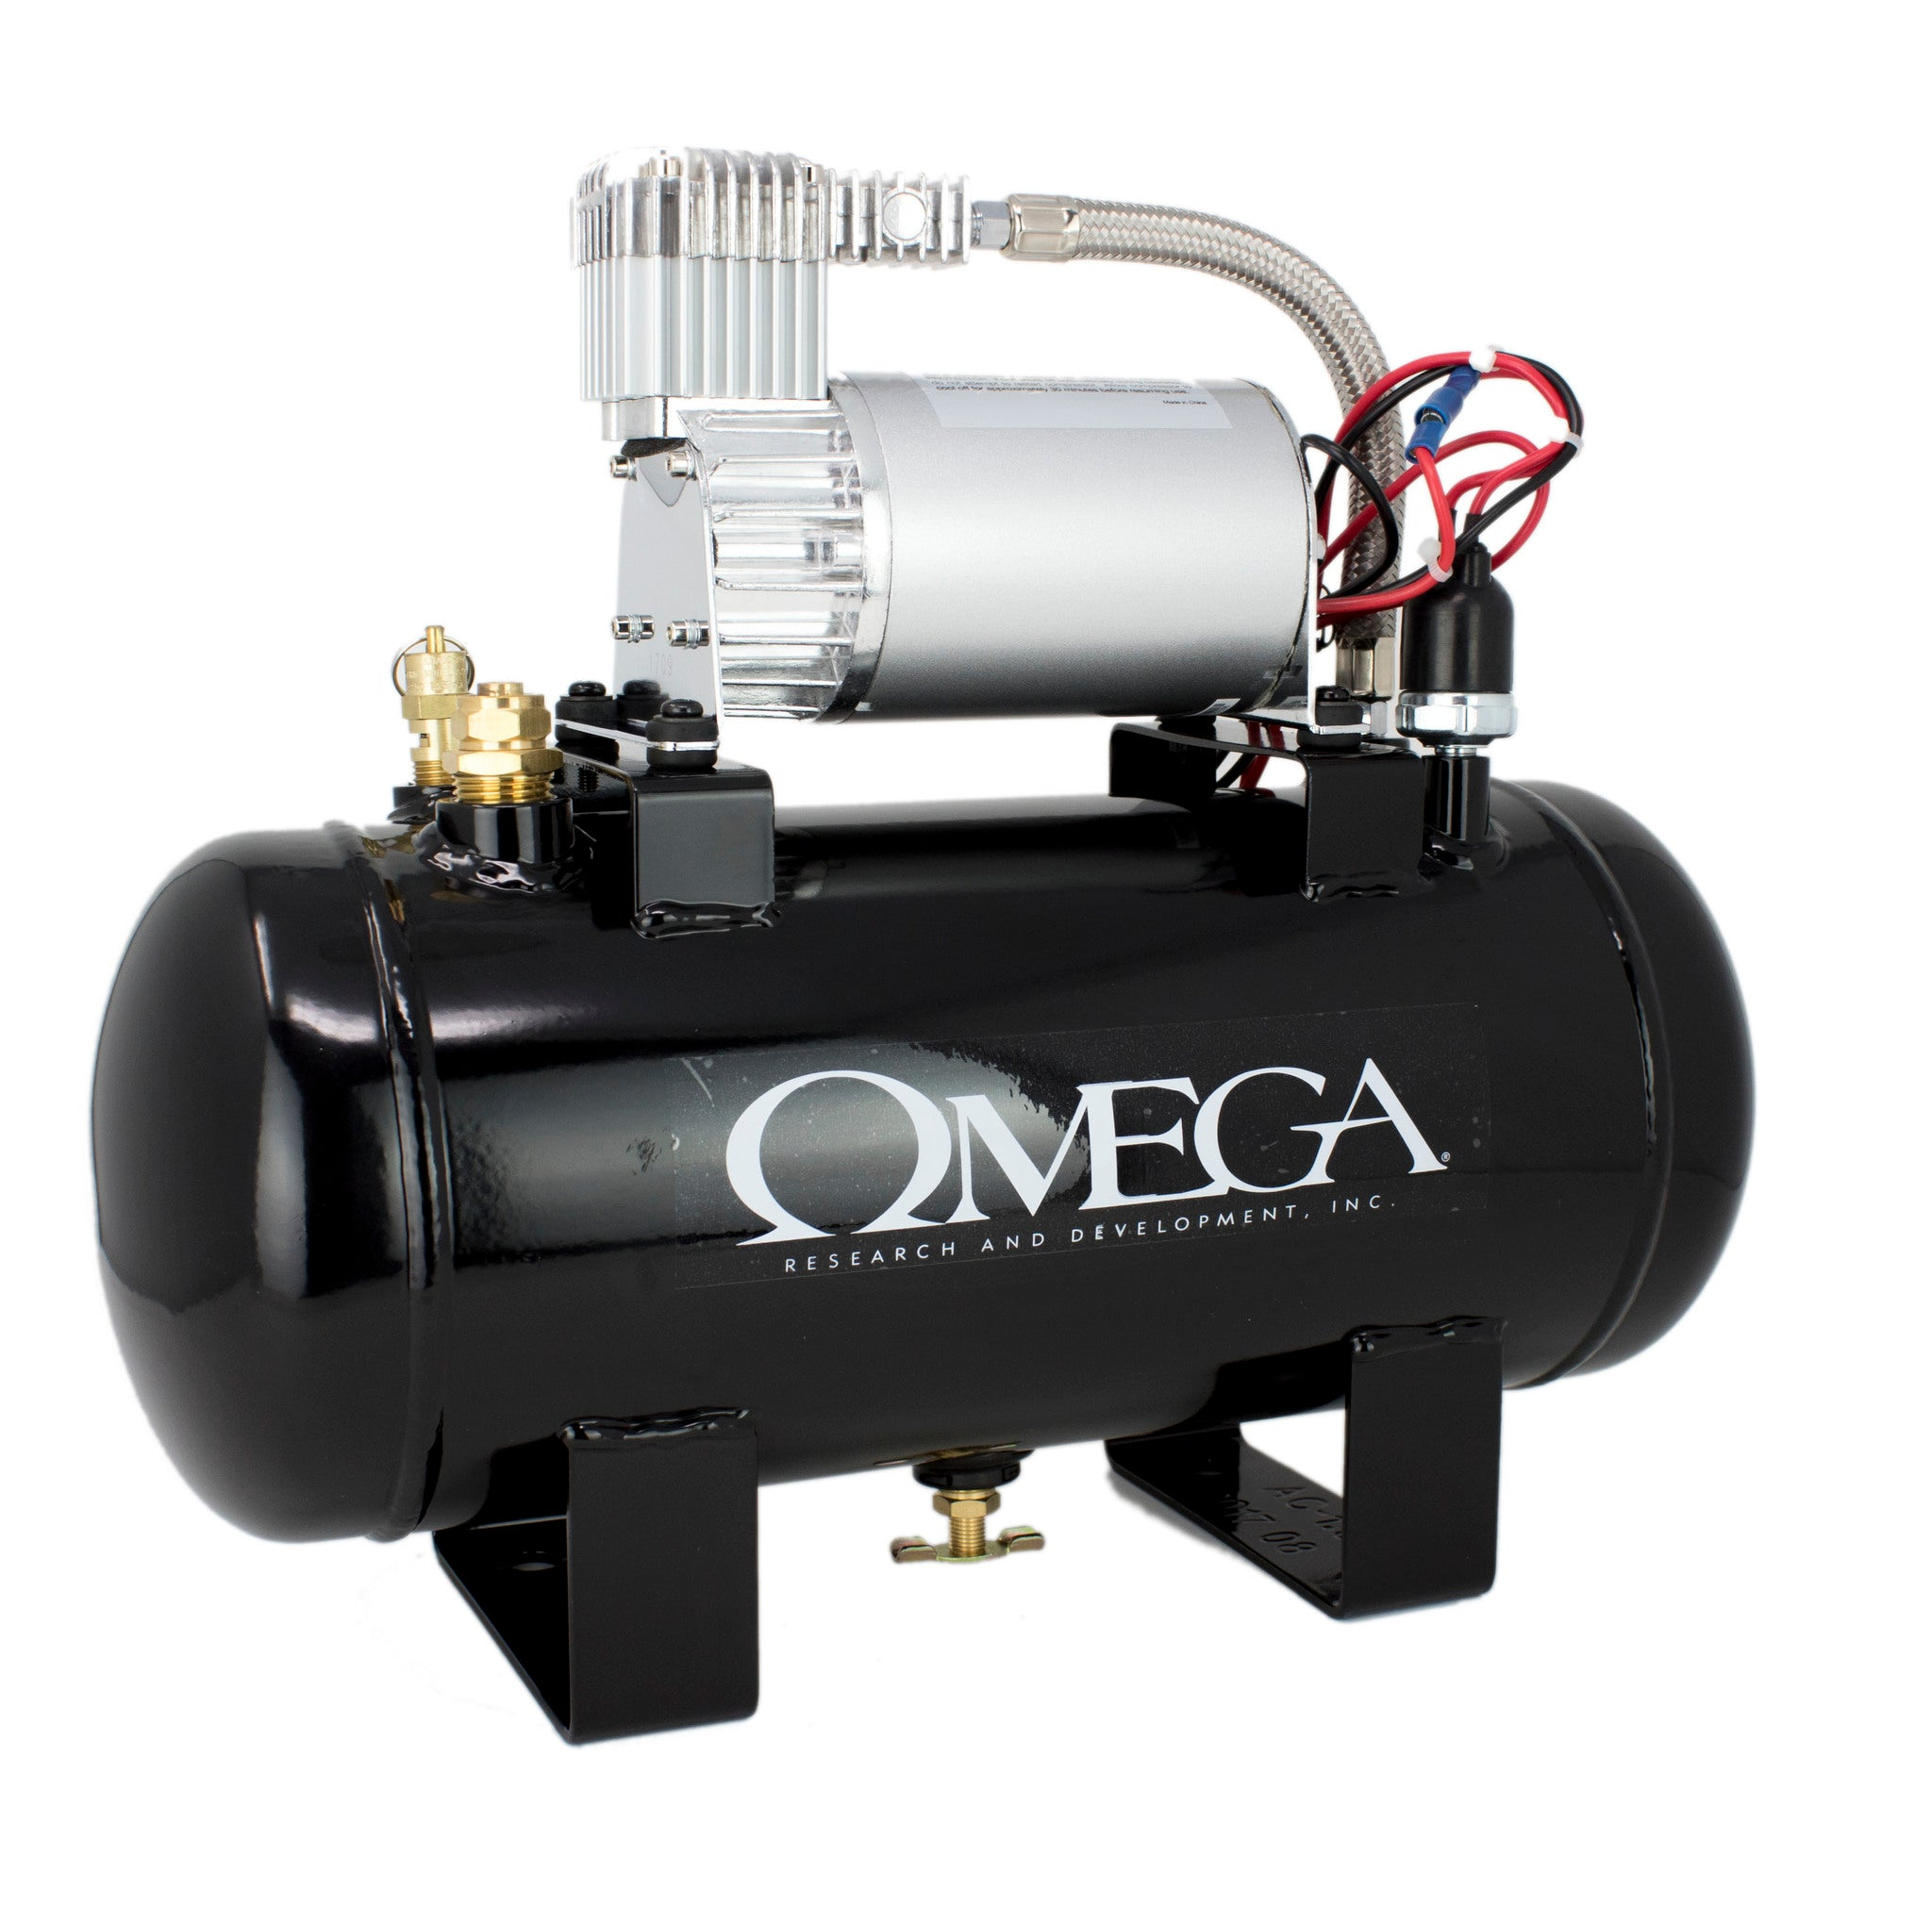 Omega Excalibur Compressor And Tank For Air Horn (1 5 Gal Unit